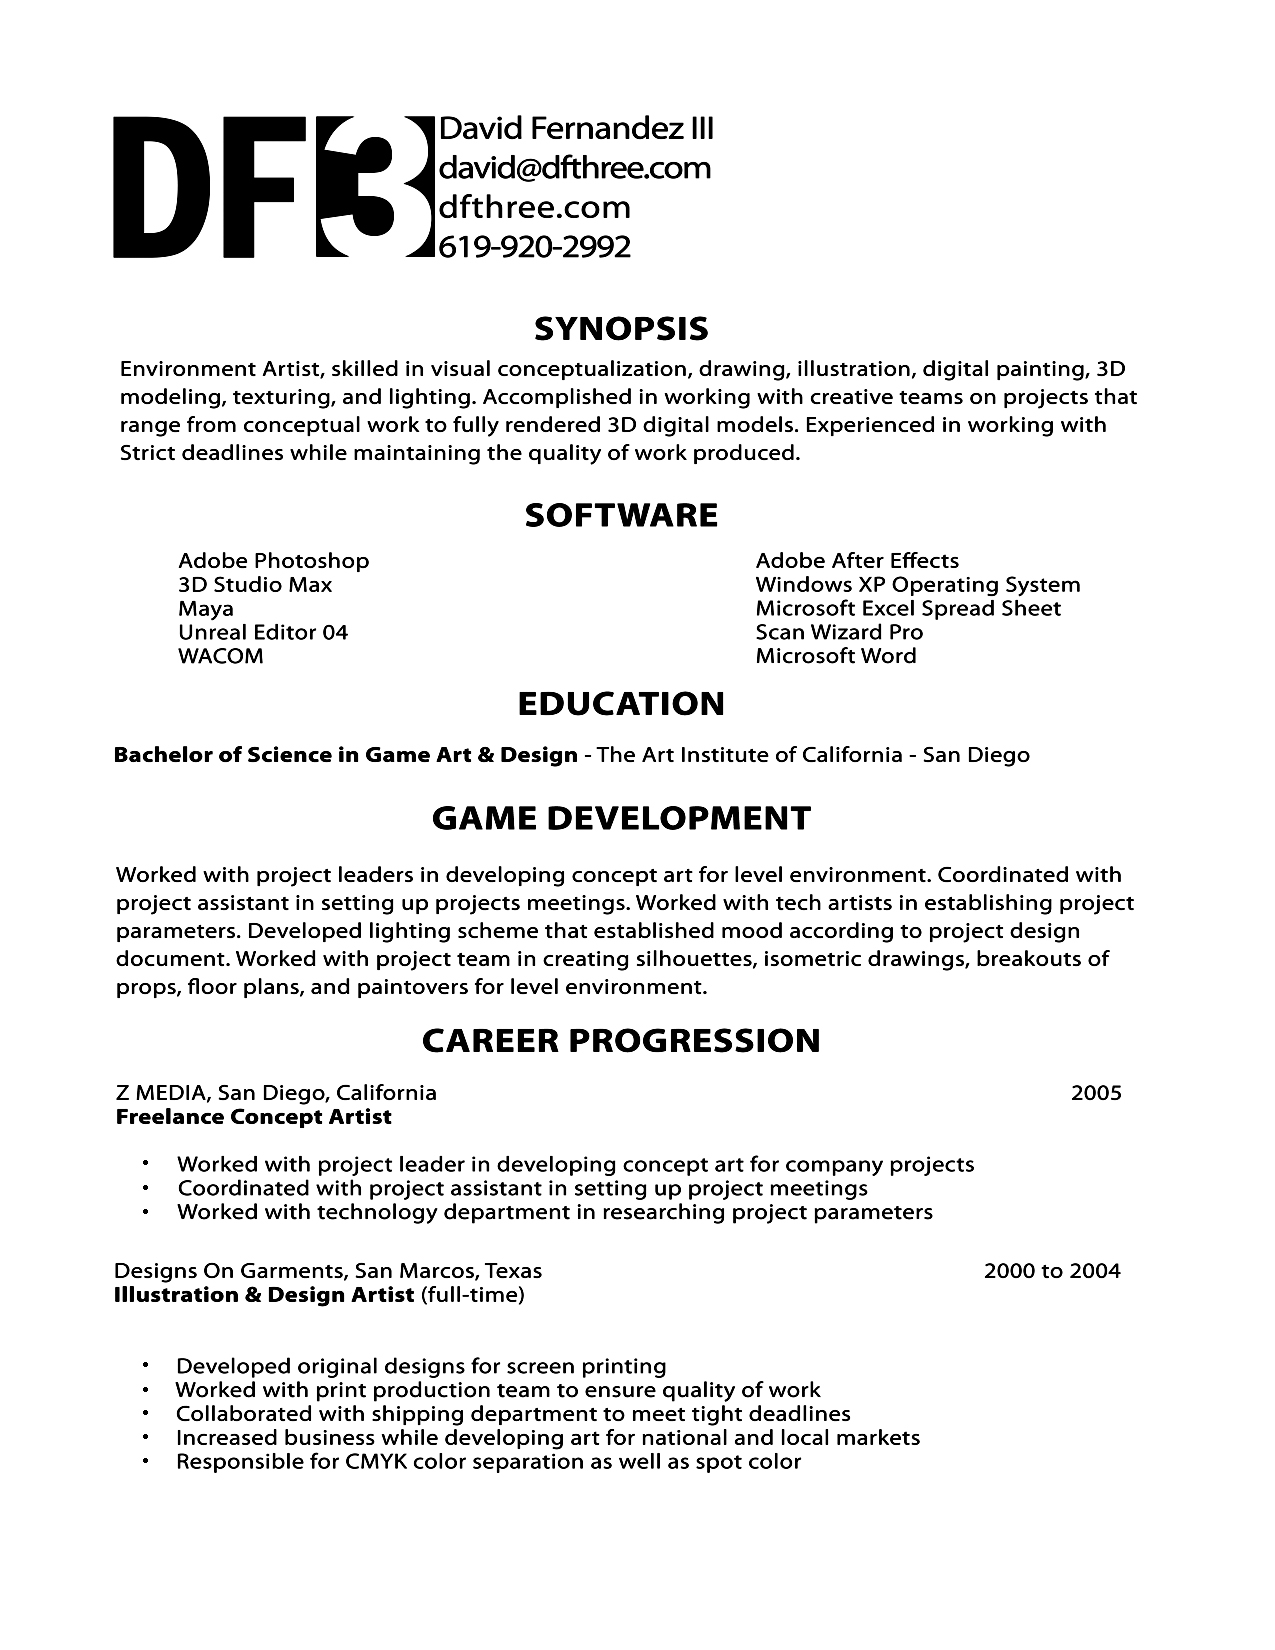 Opposenewapstandardsus  Prepossessing Game Developer Resume Game Tester Resume Sample Game Tester  With Heavenly Better Jobs Faster With Astounding Bilingual On Resume Also Should I Put A Picture On My Resume In Addition Master Resume Template And Resume En Espanol As Well As Resume Design Ideas Additionally Personal Assistant Resume Sample From Kelseymarieco With Opposenewapstandardsus  Heavenly Game Developer Resume Game Tester Resume Sample Game Tester  With Astounding Better Jobs Faster And Prepossessing Bilingual On Resume Also Should I Put A Picture On My Resume In Addition Master Resume Template From Kelseymarieco